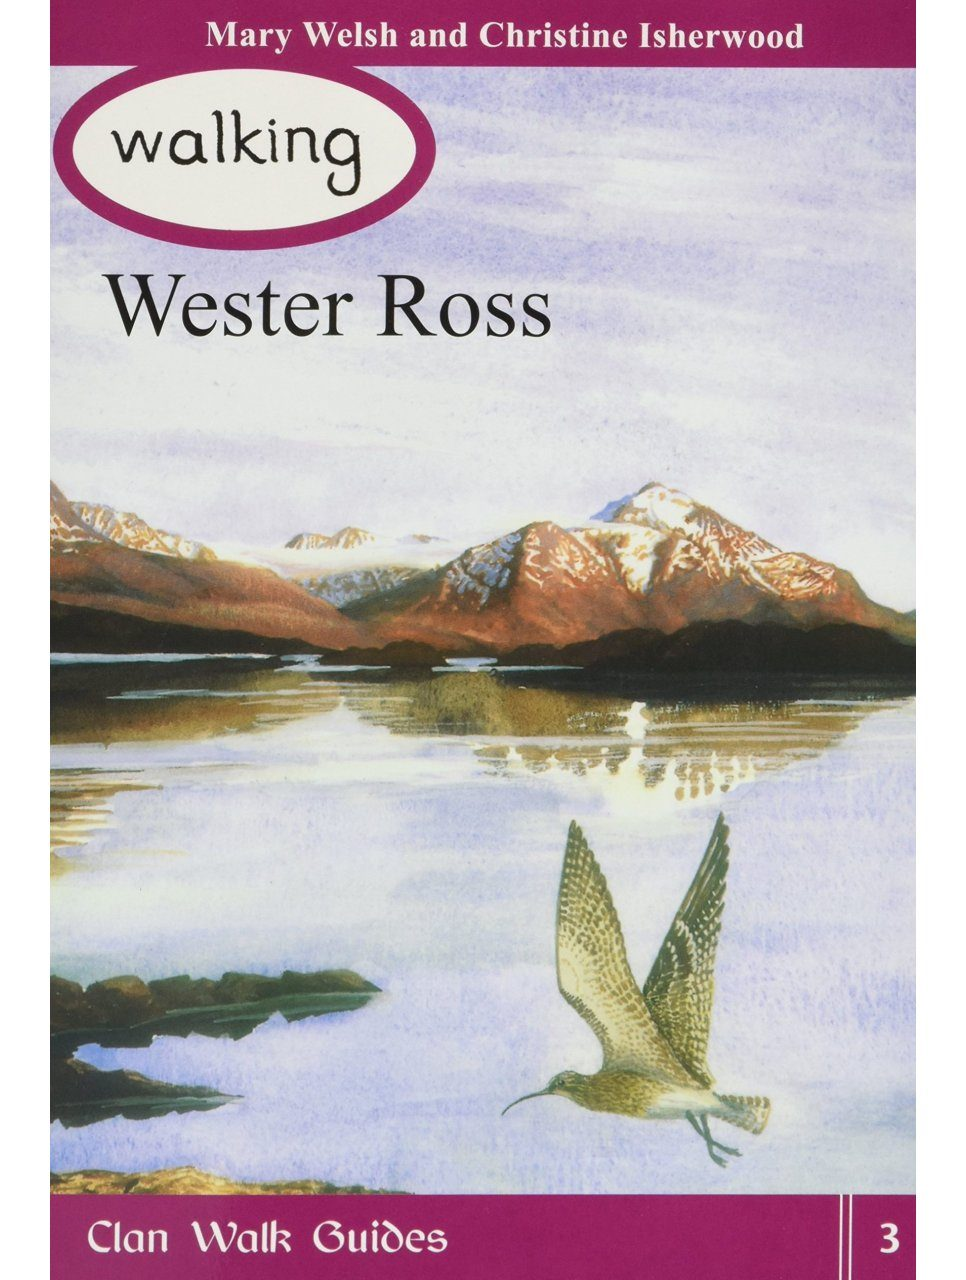 Walking Wester Ross